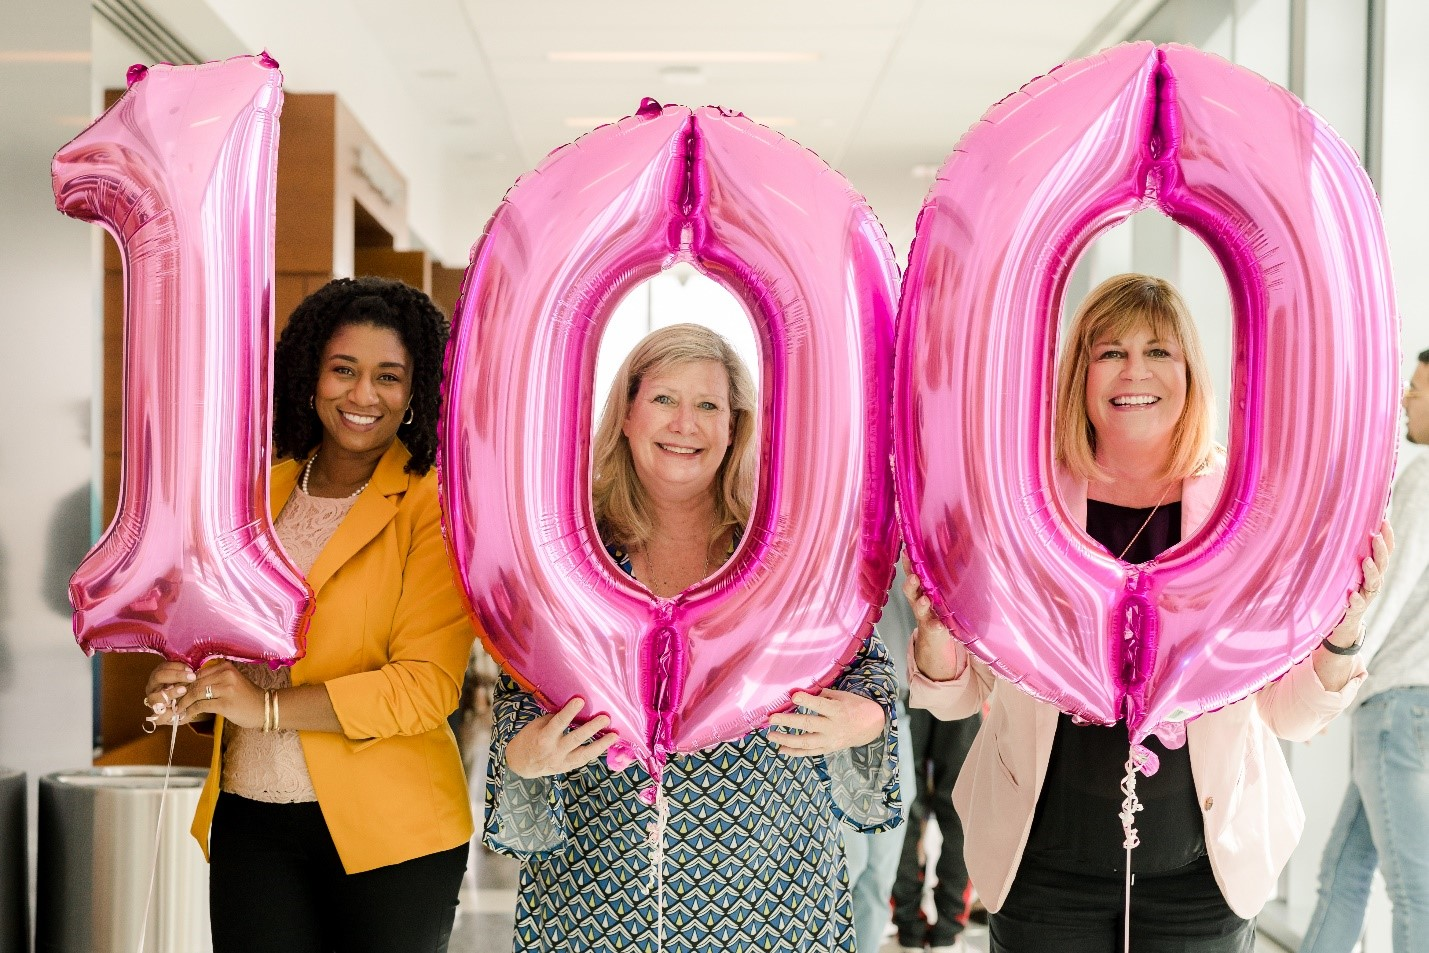 From Left to Right, Candice Odom, Selfless Love Foundation; Amy Simpson, Adoption-Share; and Dr. Elizabeth Wynter, celebrating the 100th Family-Match adoption in Florida earlier this year. Picture by: ThisisMo Media